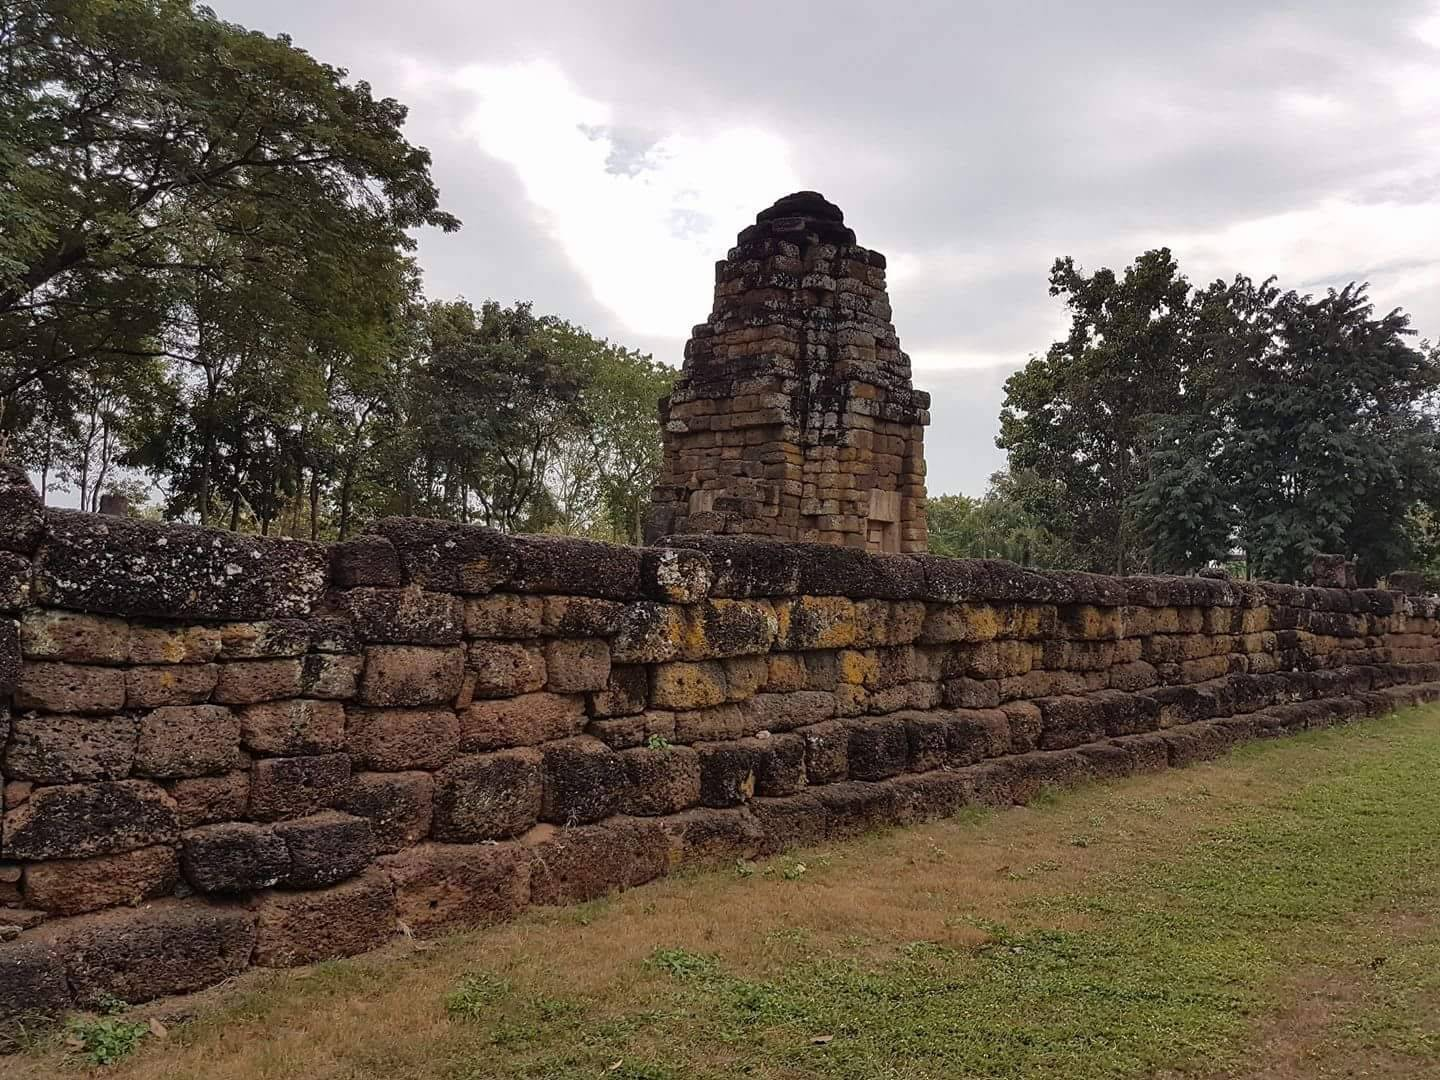 Story of Khon Kaen through temples and historical places